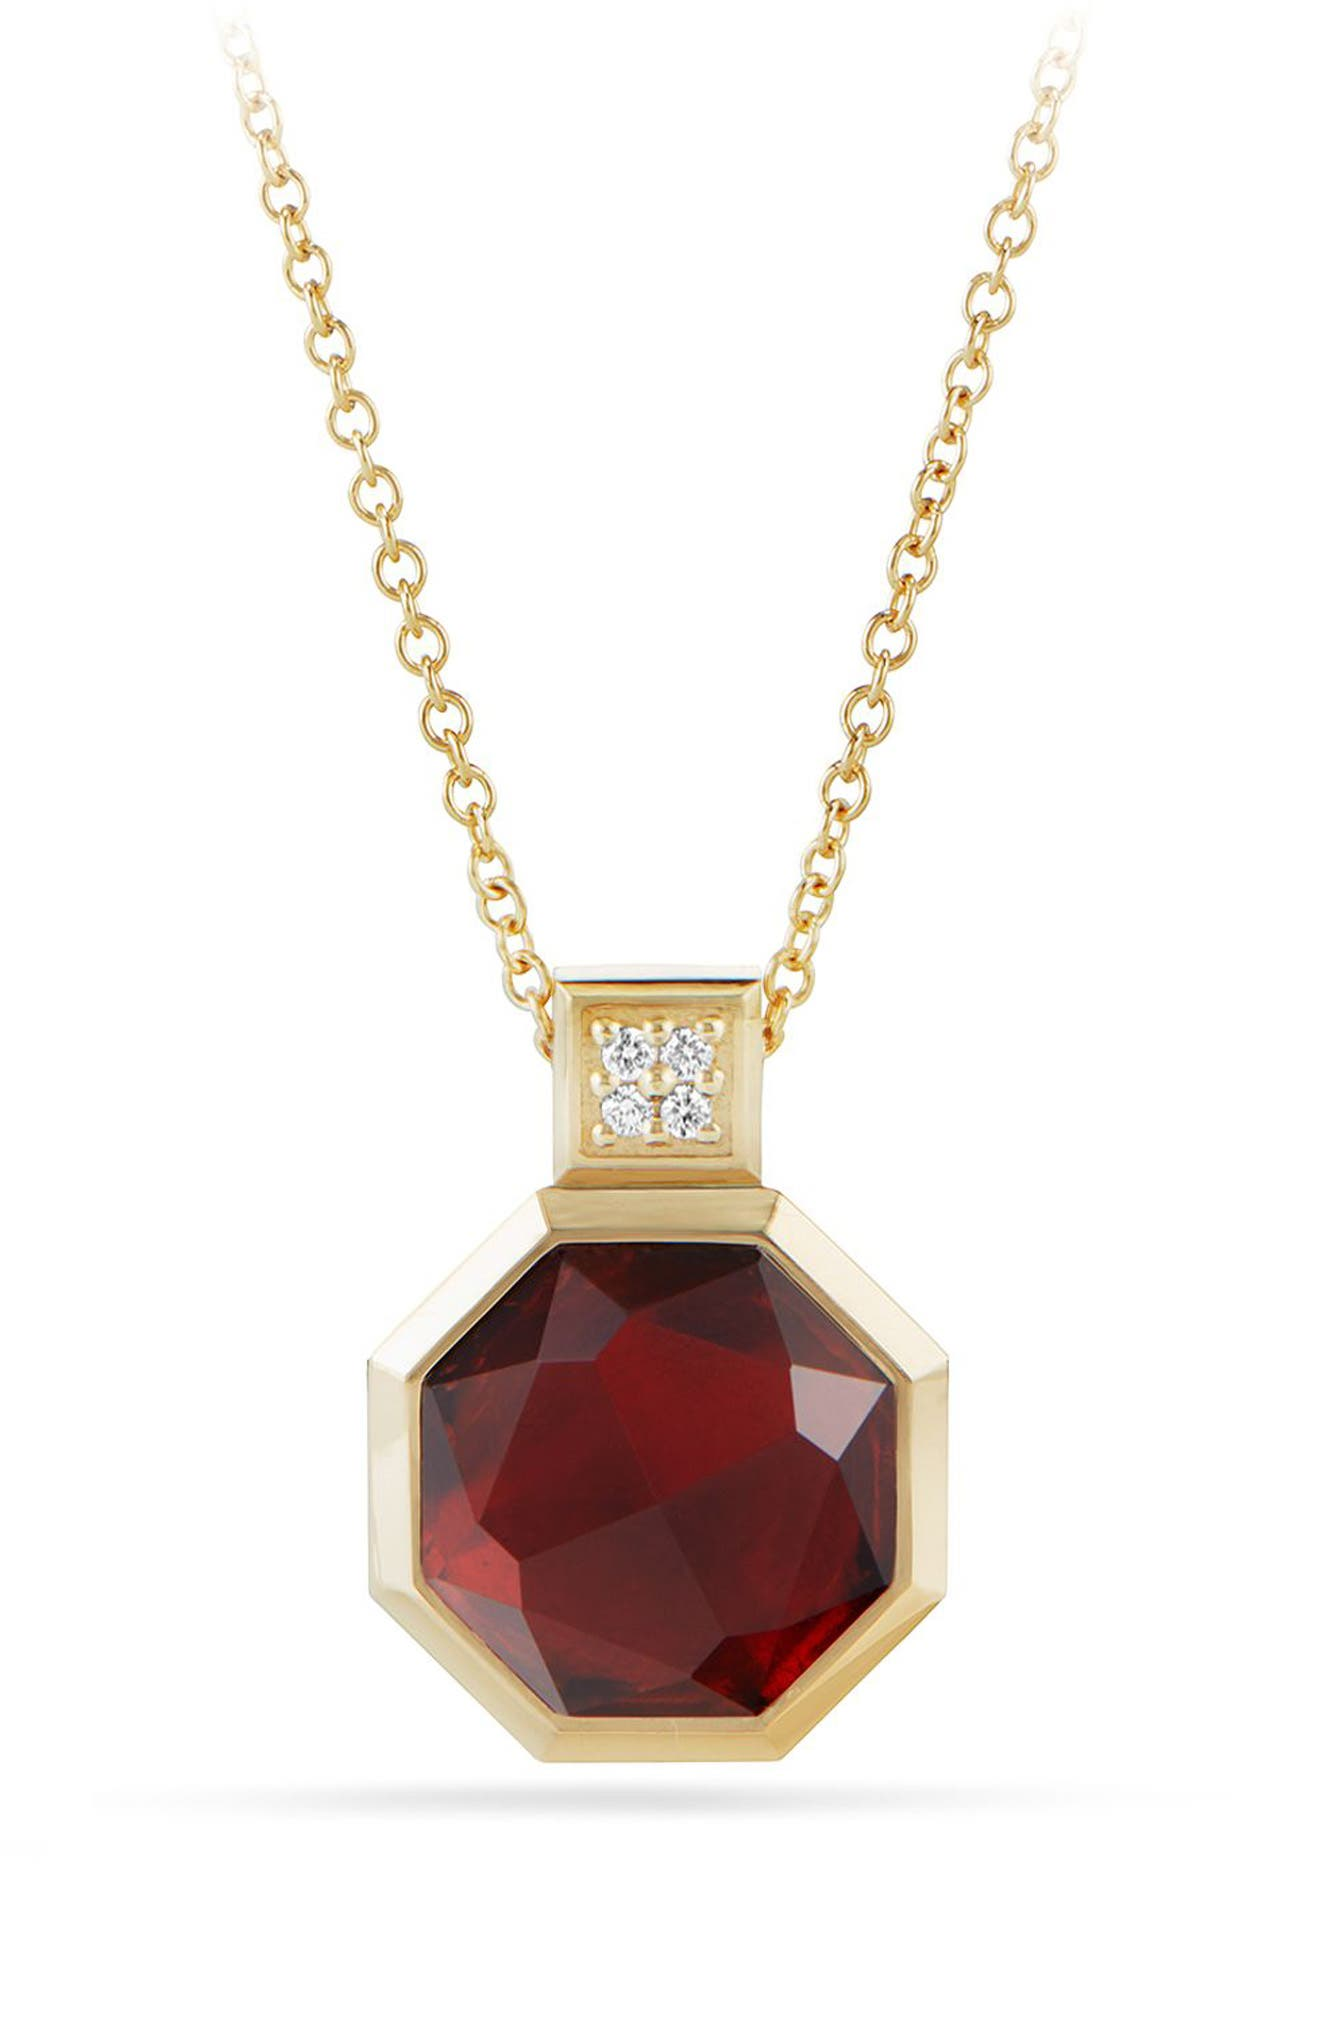 Guilin Octagon Pendant Necklace,                             Main thumbnail 1, color,                             YELLOW GOLD/ DIAMOND